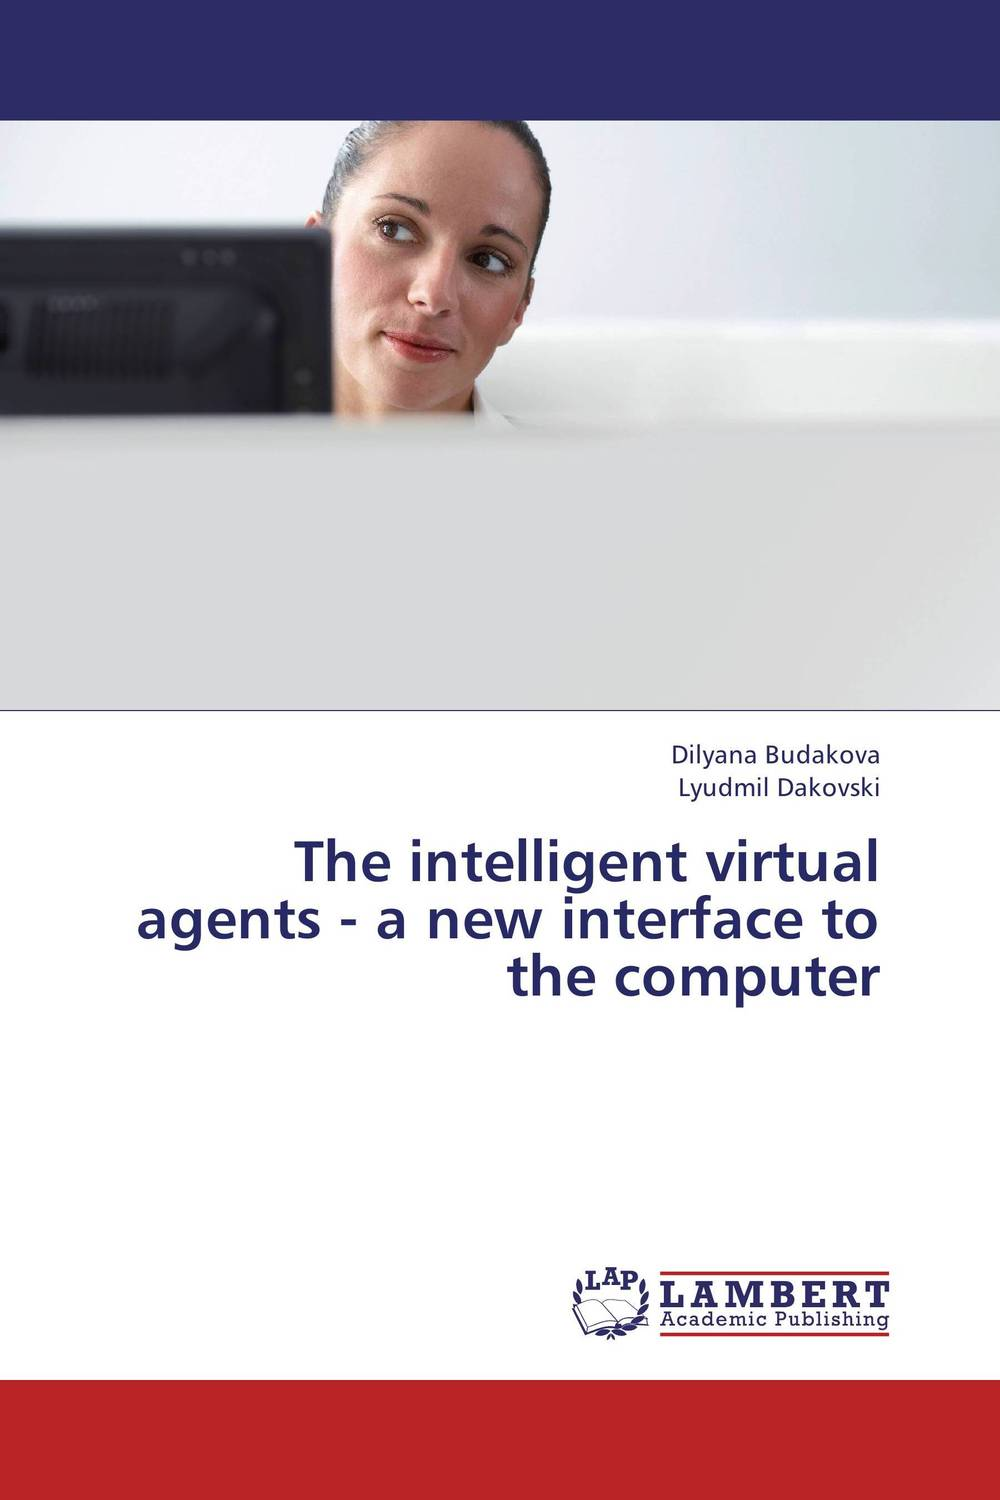 The intelligent virtual agents - a new interface to the computer attack of the not so virtual monsters